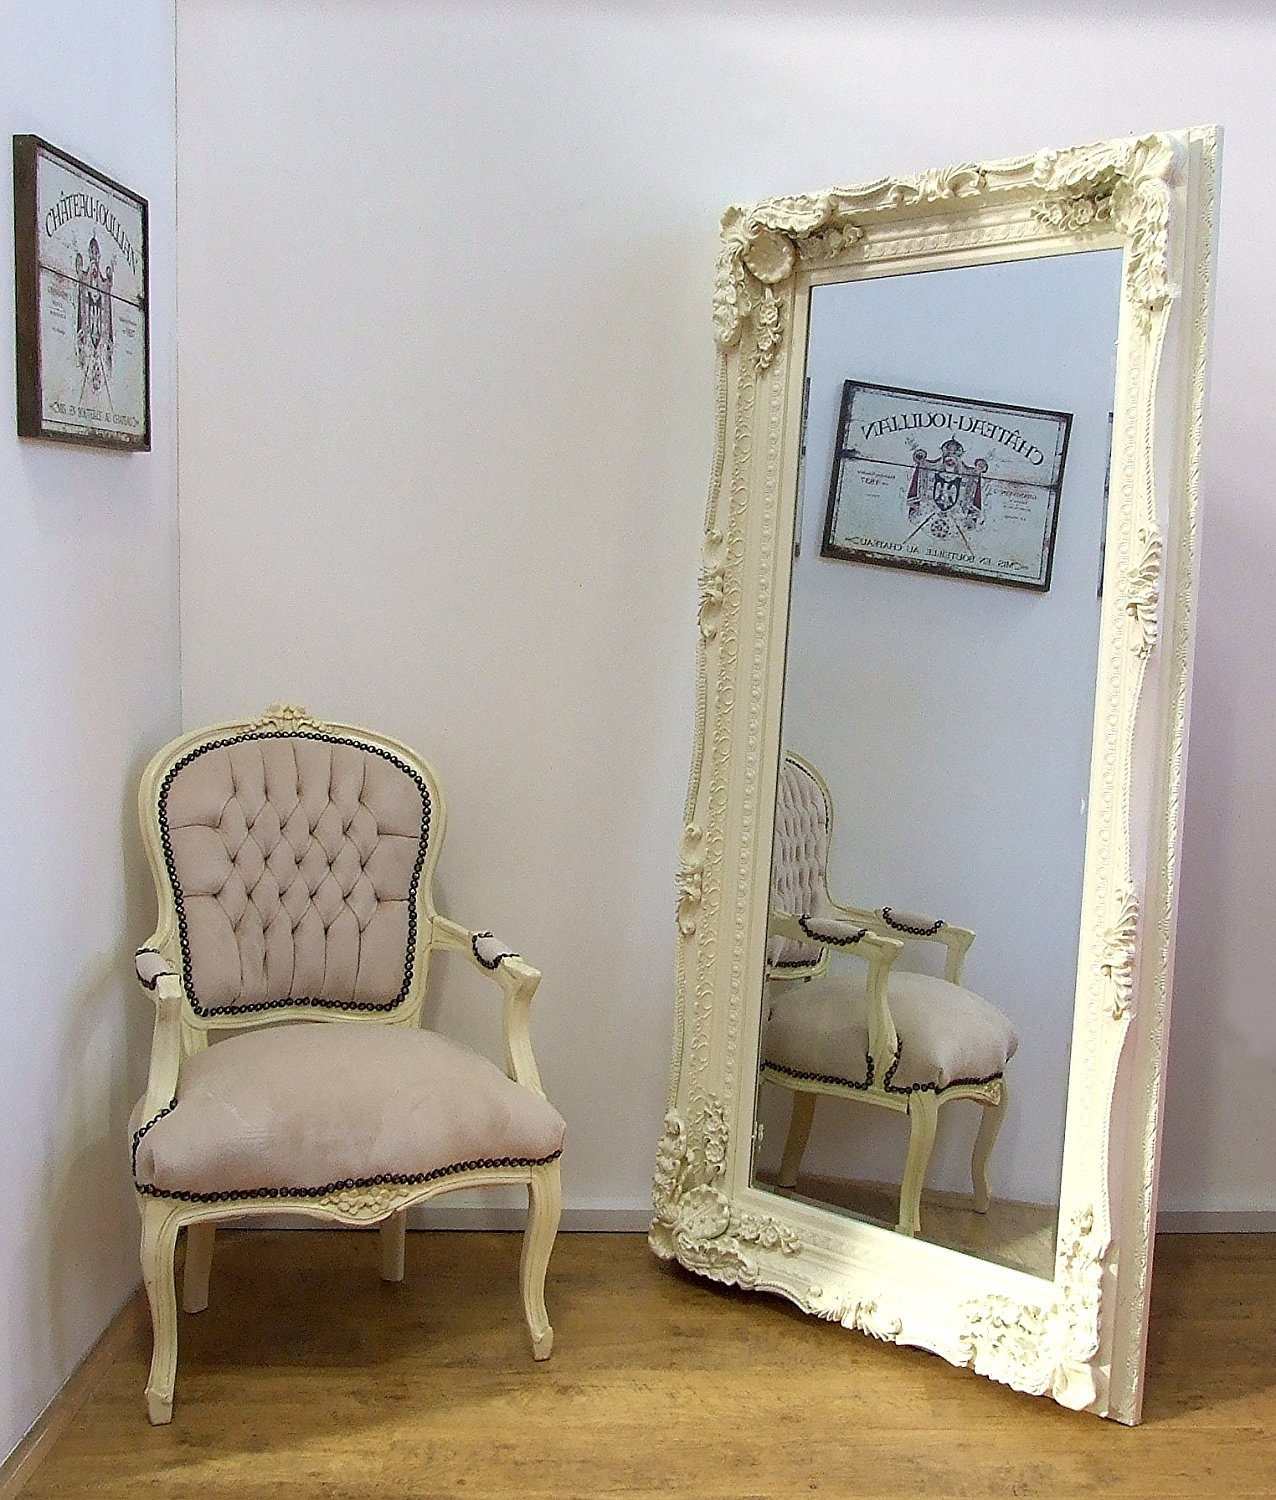 4ft6 X 2ft6 Large Ivory Ornate Shab Chic Cream Wall Mirror Within Ivory Ornate Mirror (Image 1 of 15)